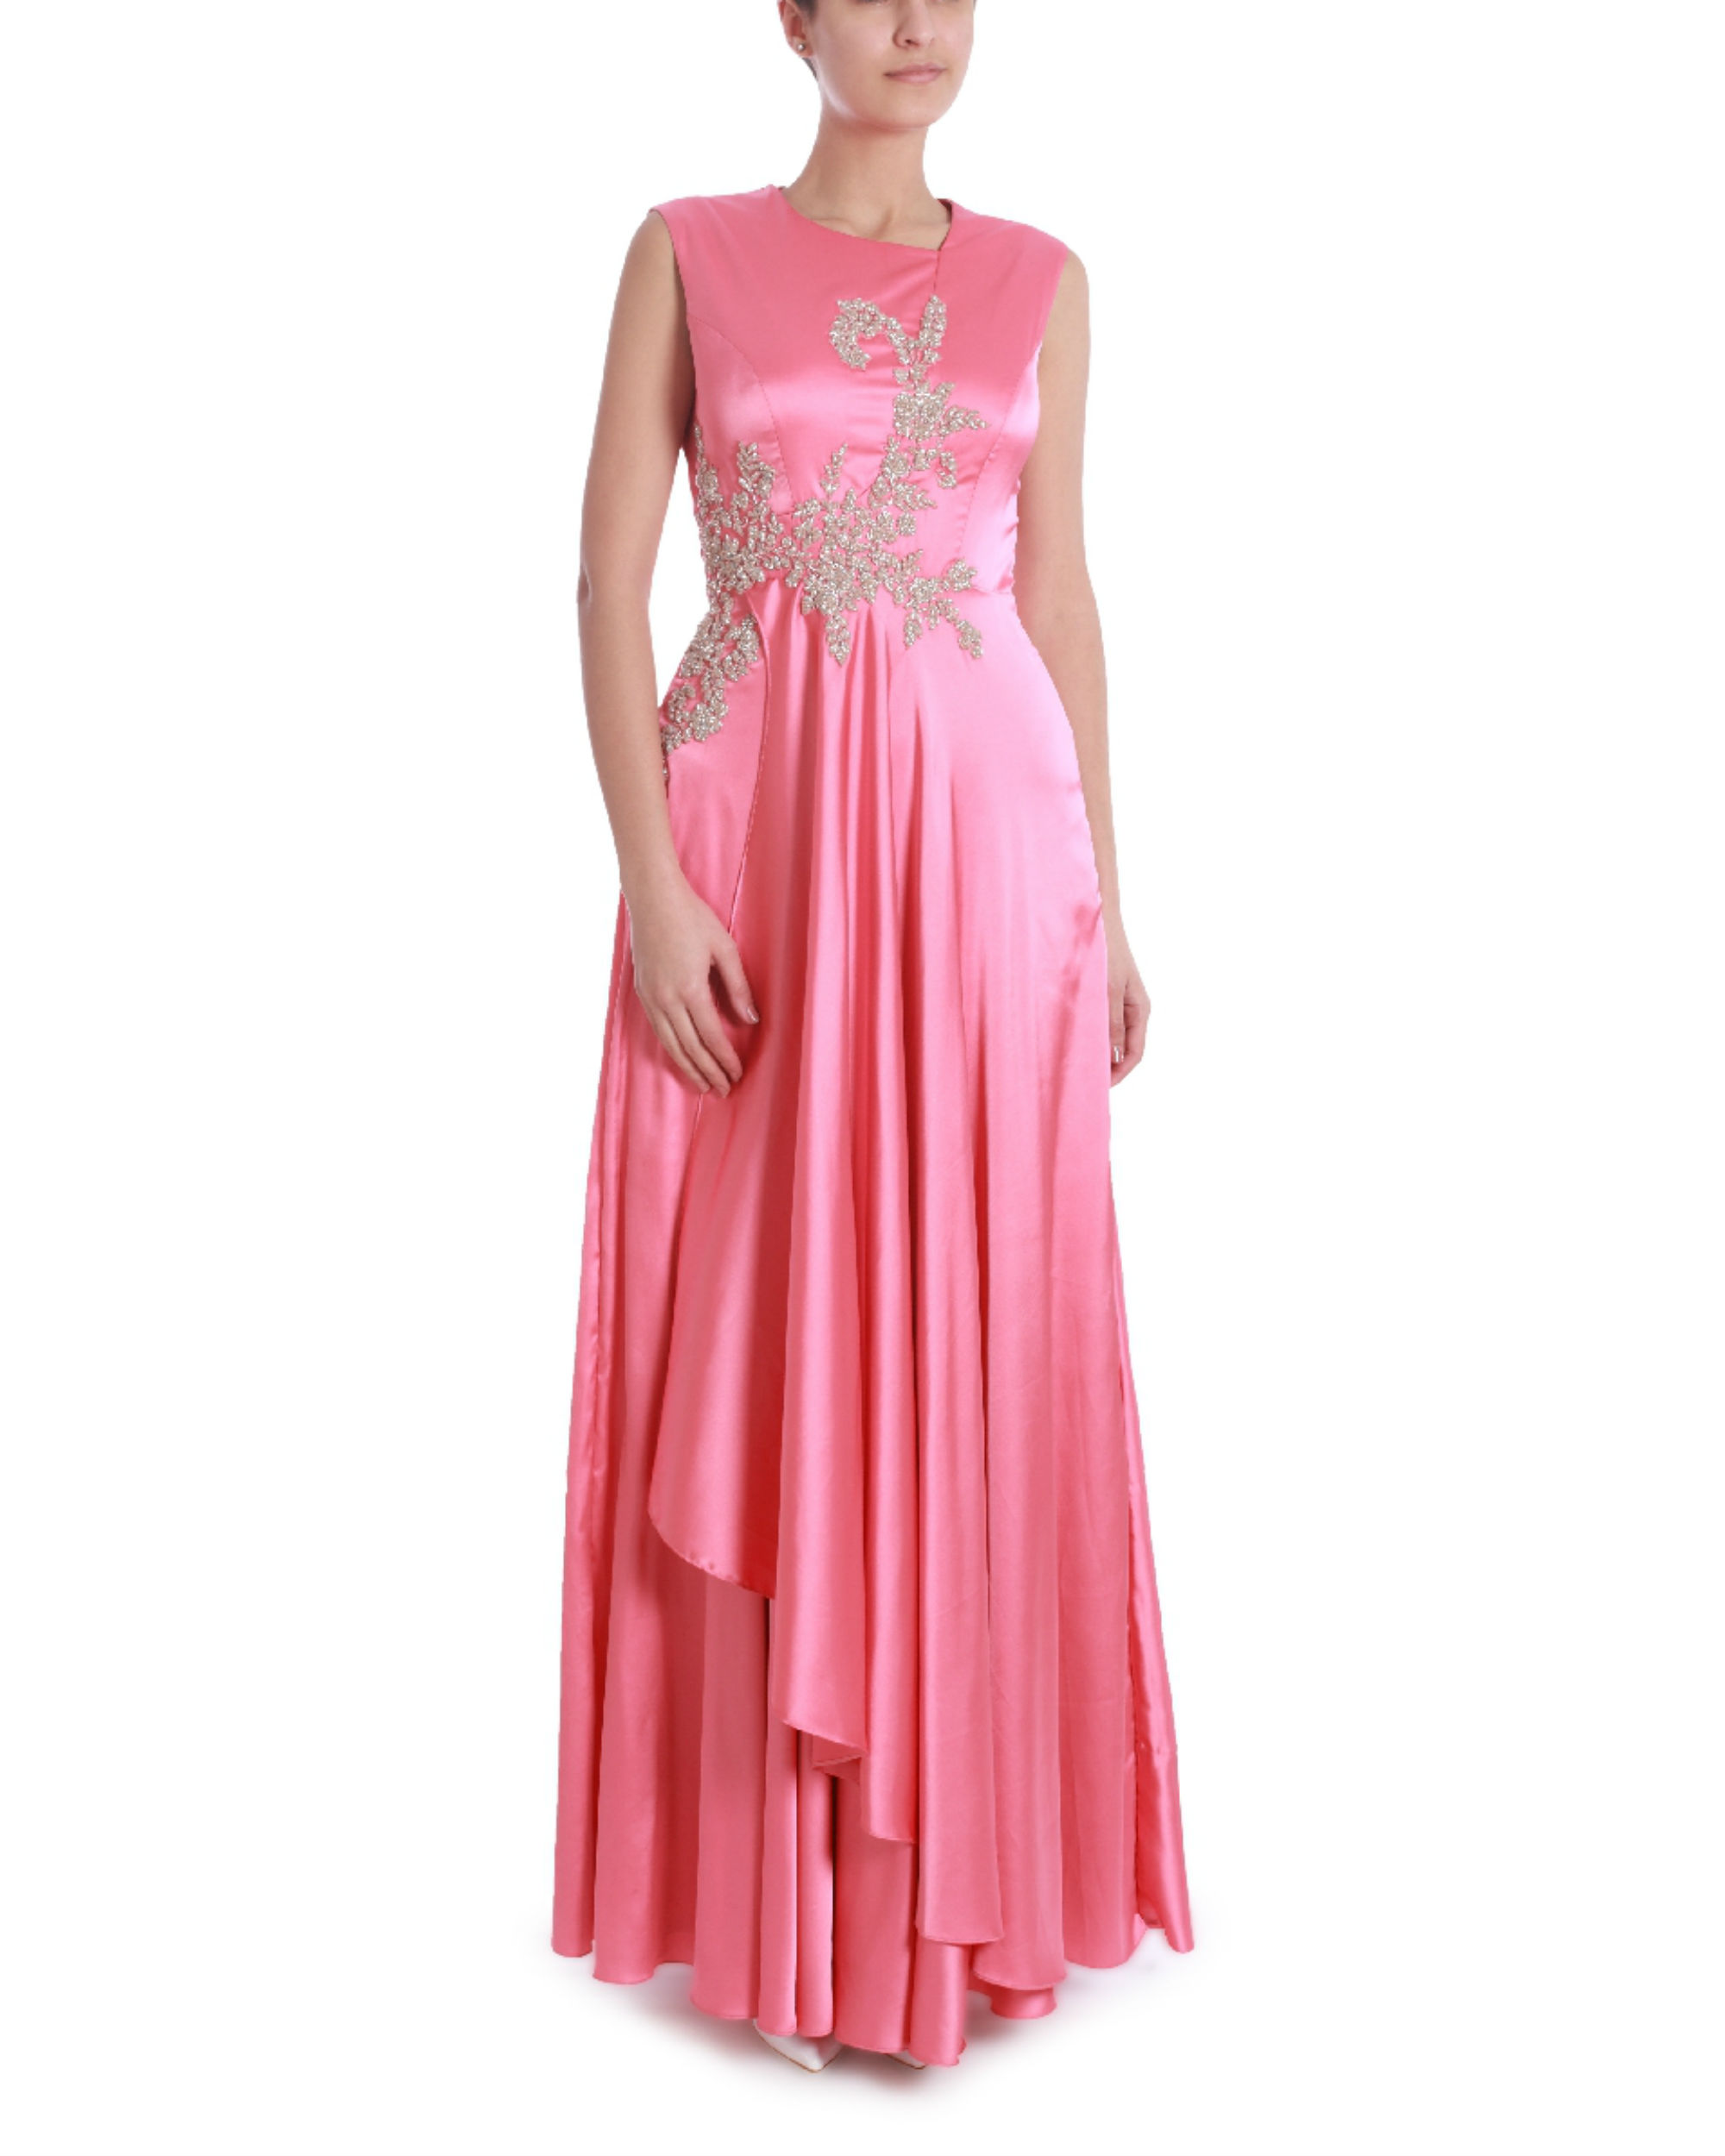 Georgia pink gown